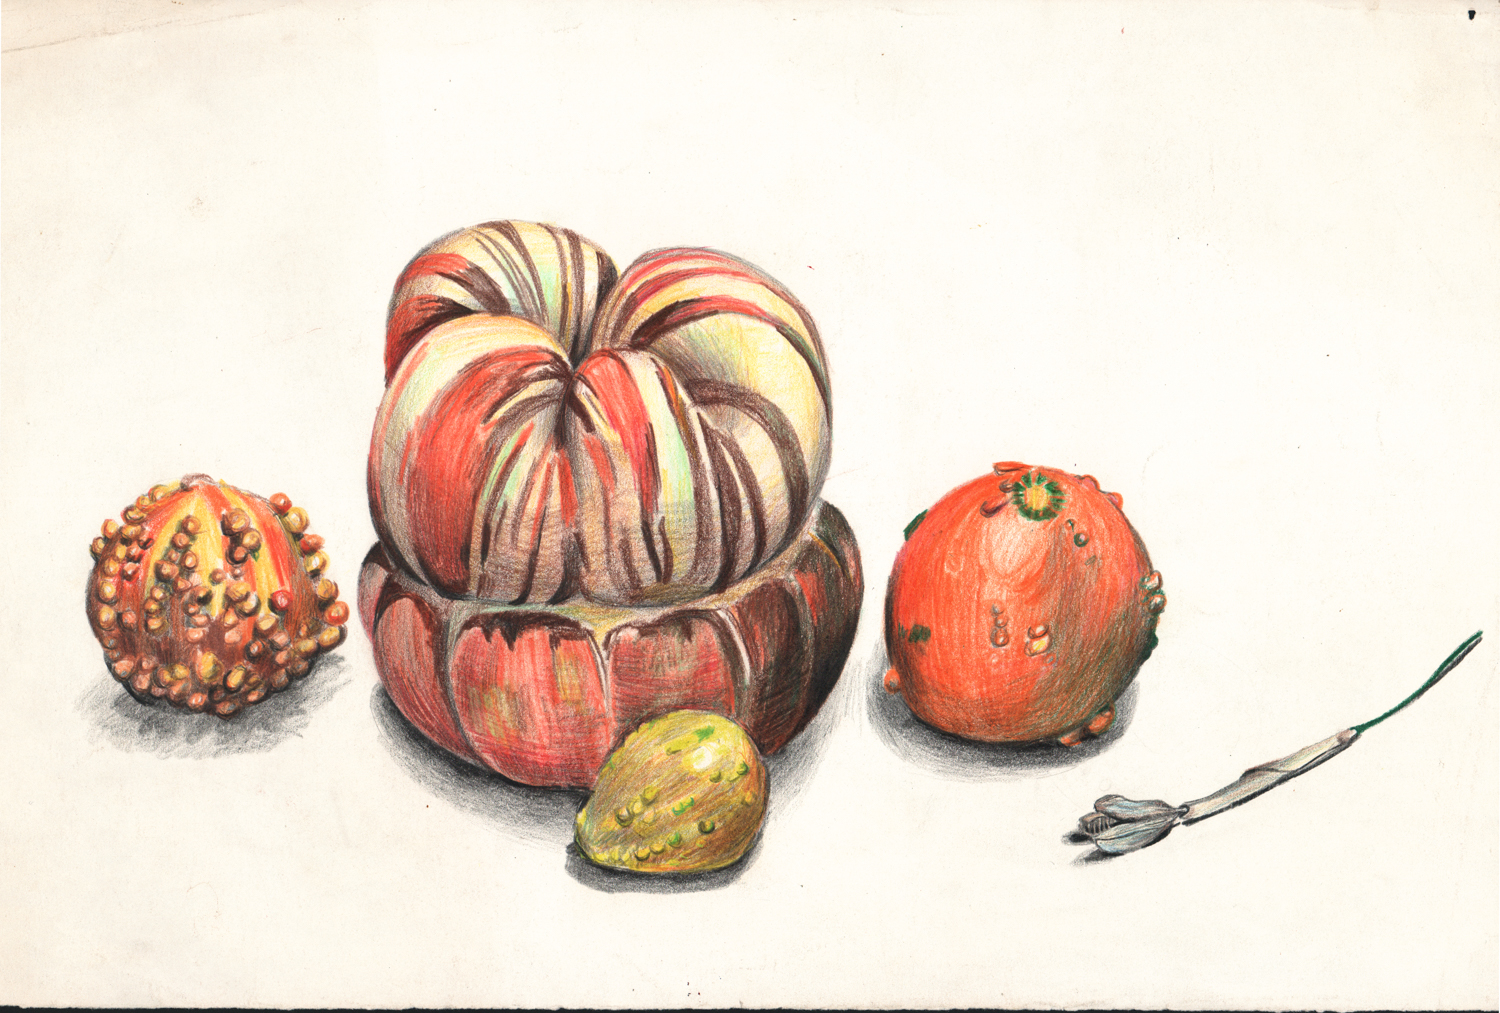 Untitled (Gourds) - Pencil Drawing - 11